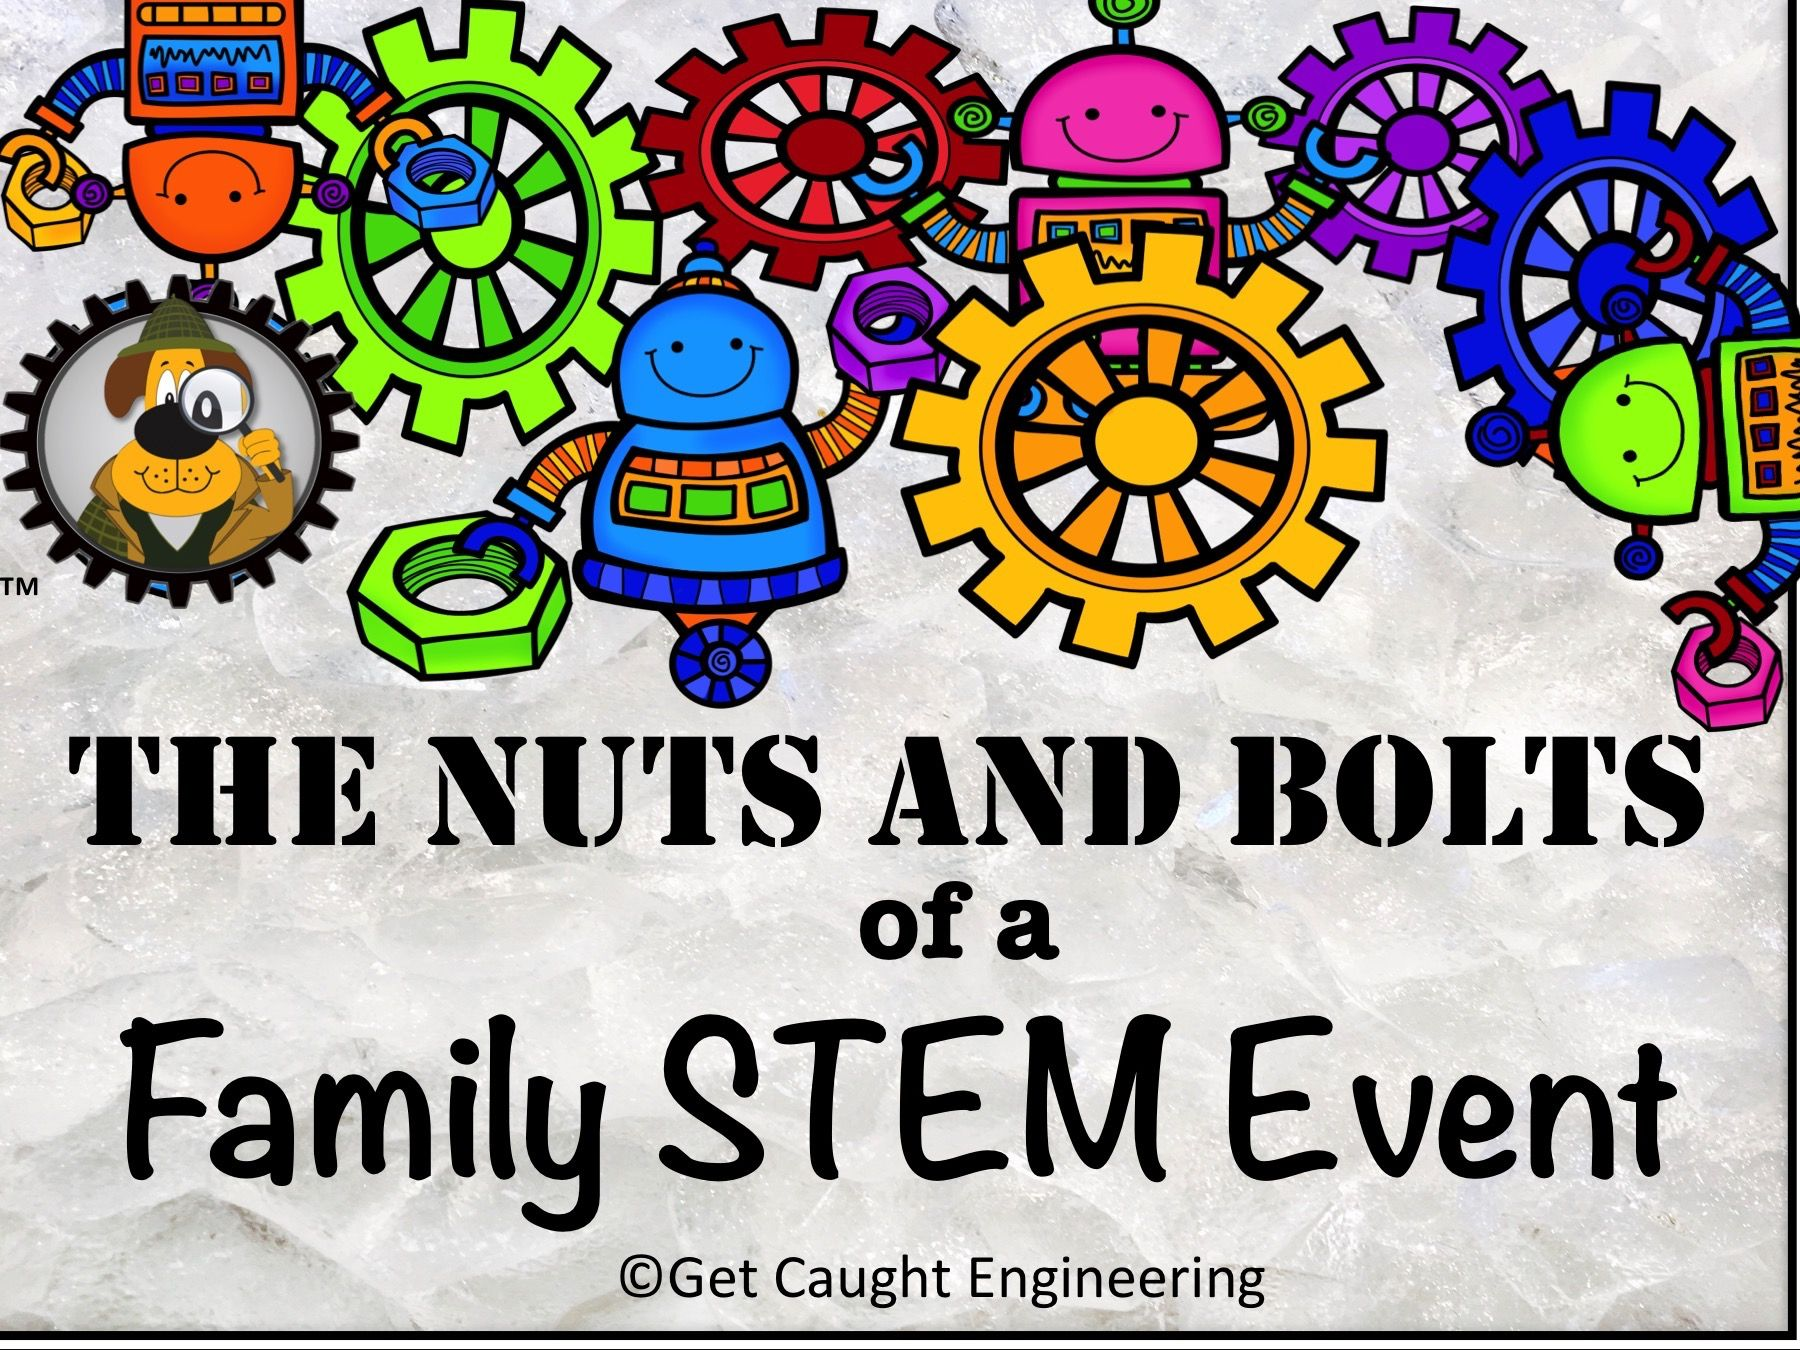 Gearing up for a STEM event this spring? Once the testing season is over, a fun family festival that emphasizes hands-on STEM activities is a wonderful way to end the year. Having special Family STEM nights or an engineering day has become increasingly more popular across the country. These events are not only entertaining …